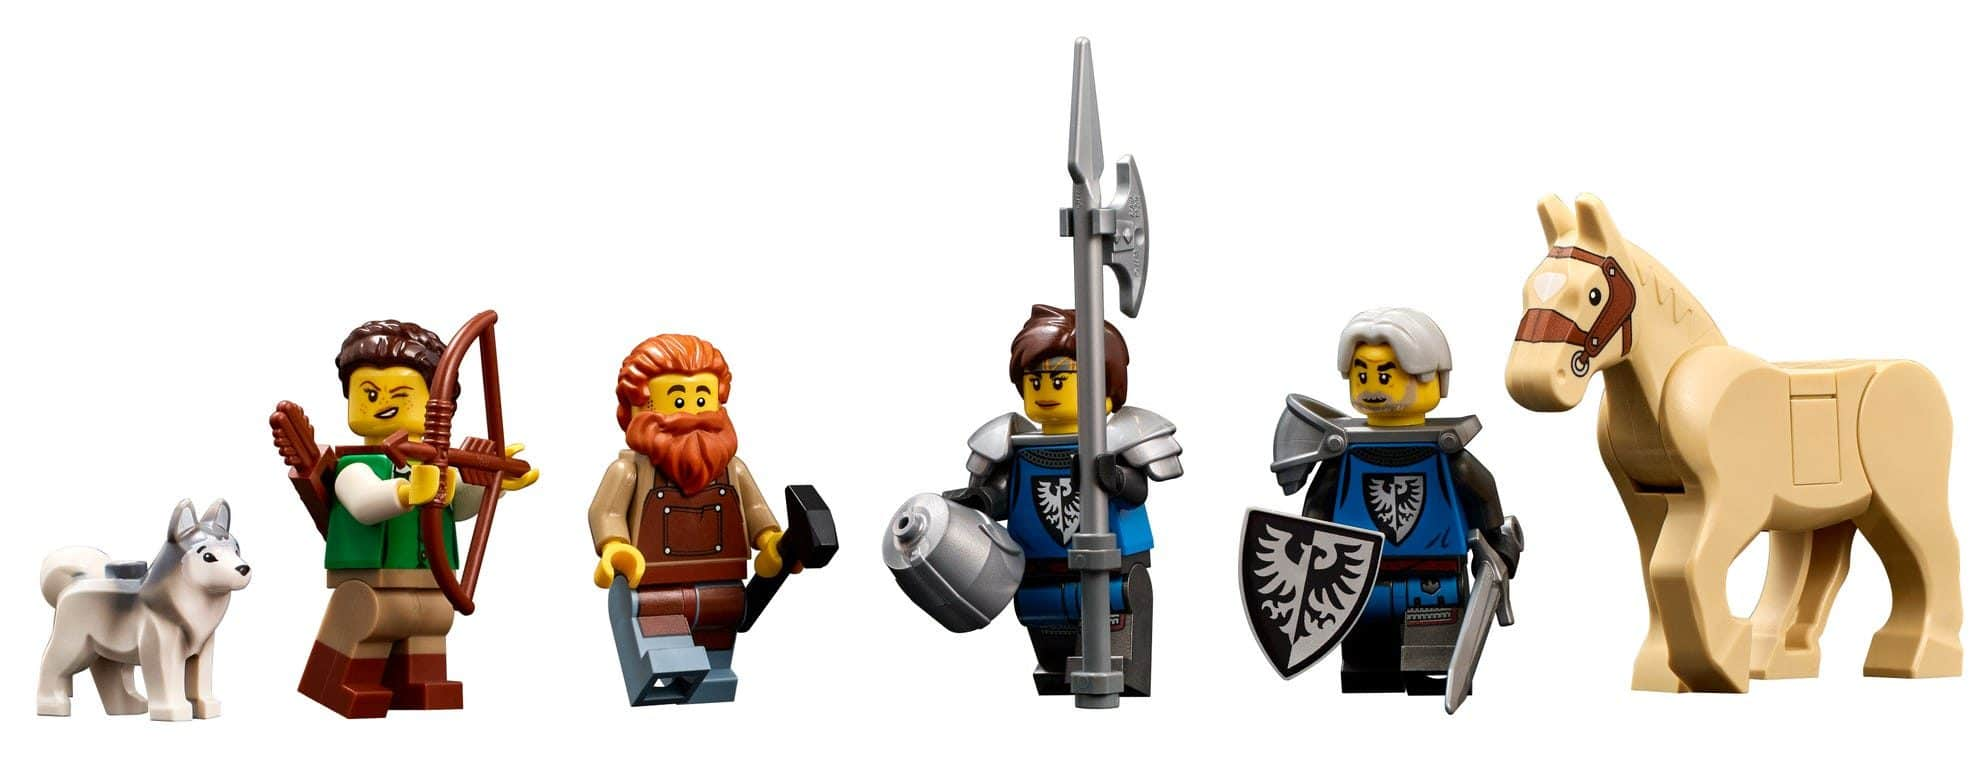 LEGO Ideas 21325 Medieval Blacksmith (15)